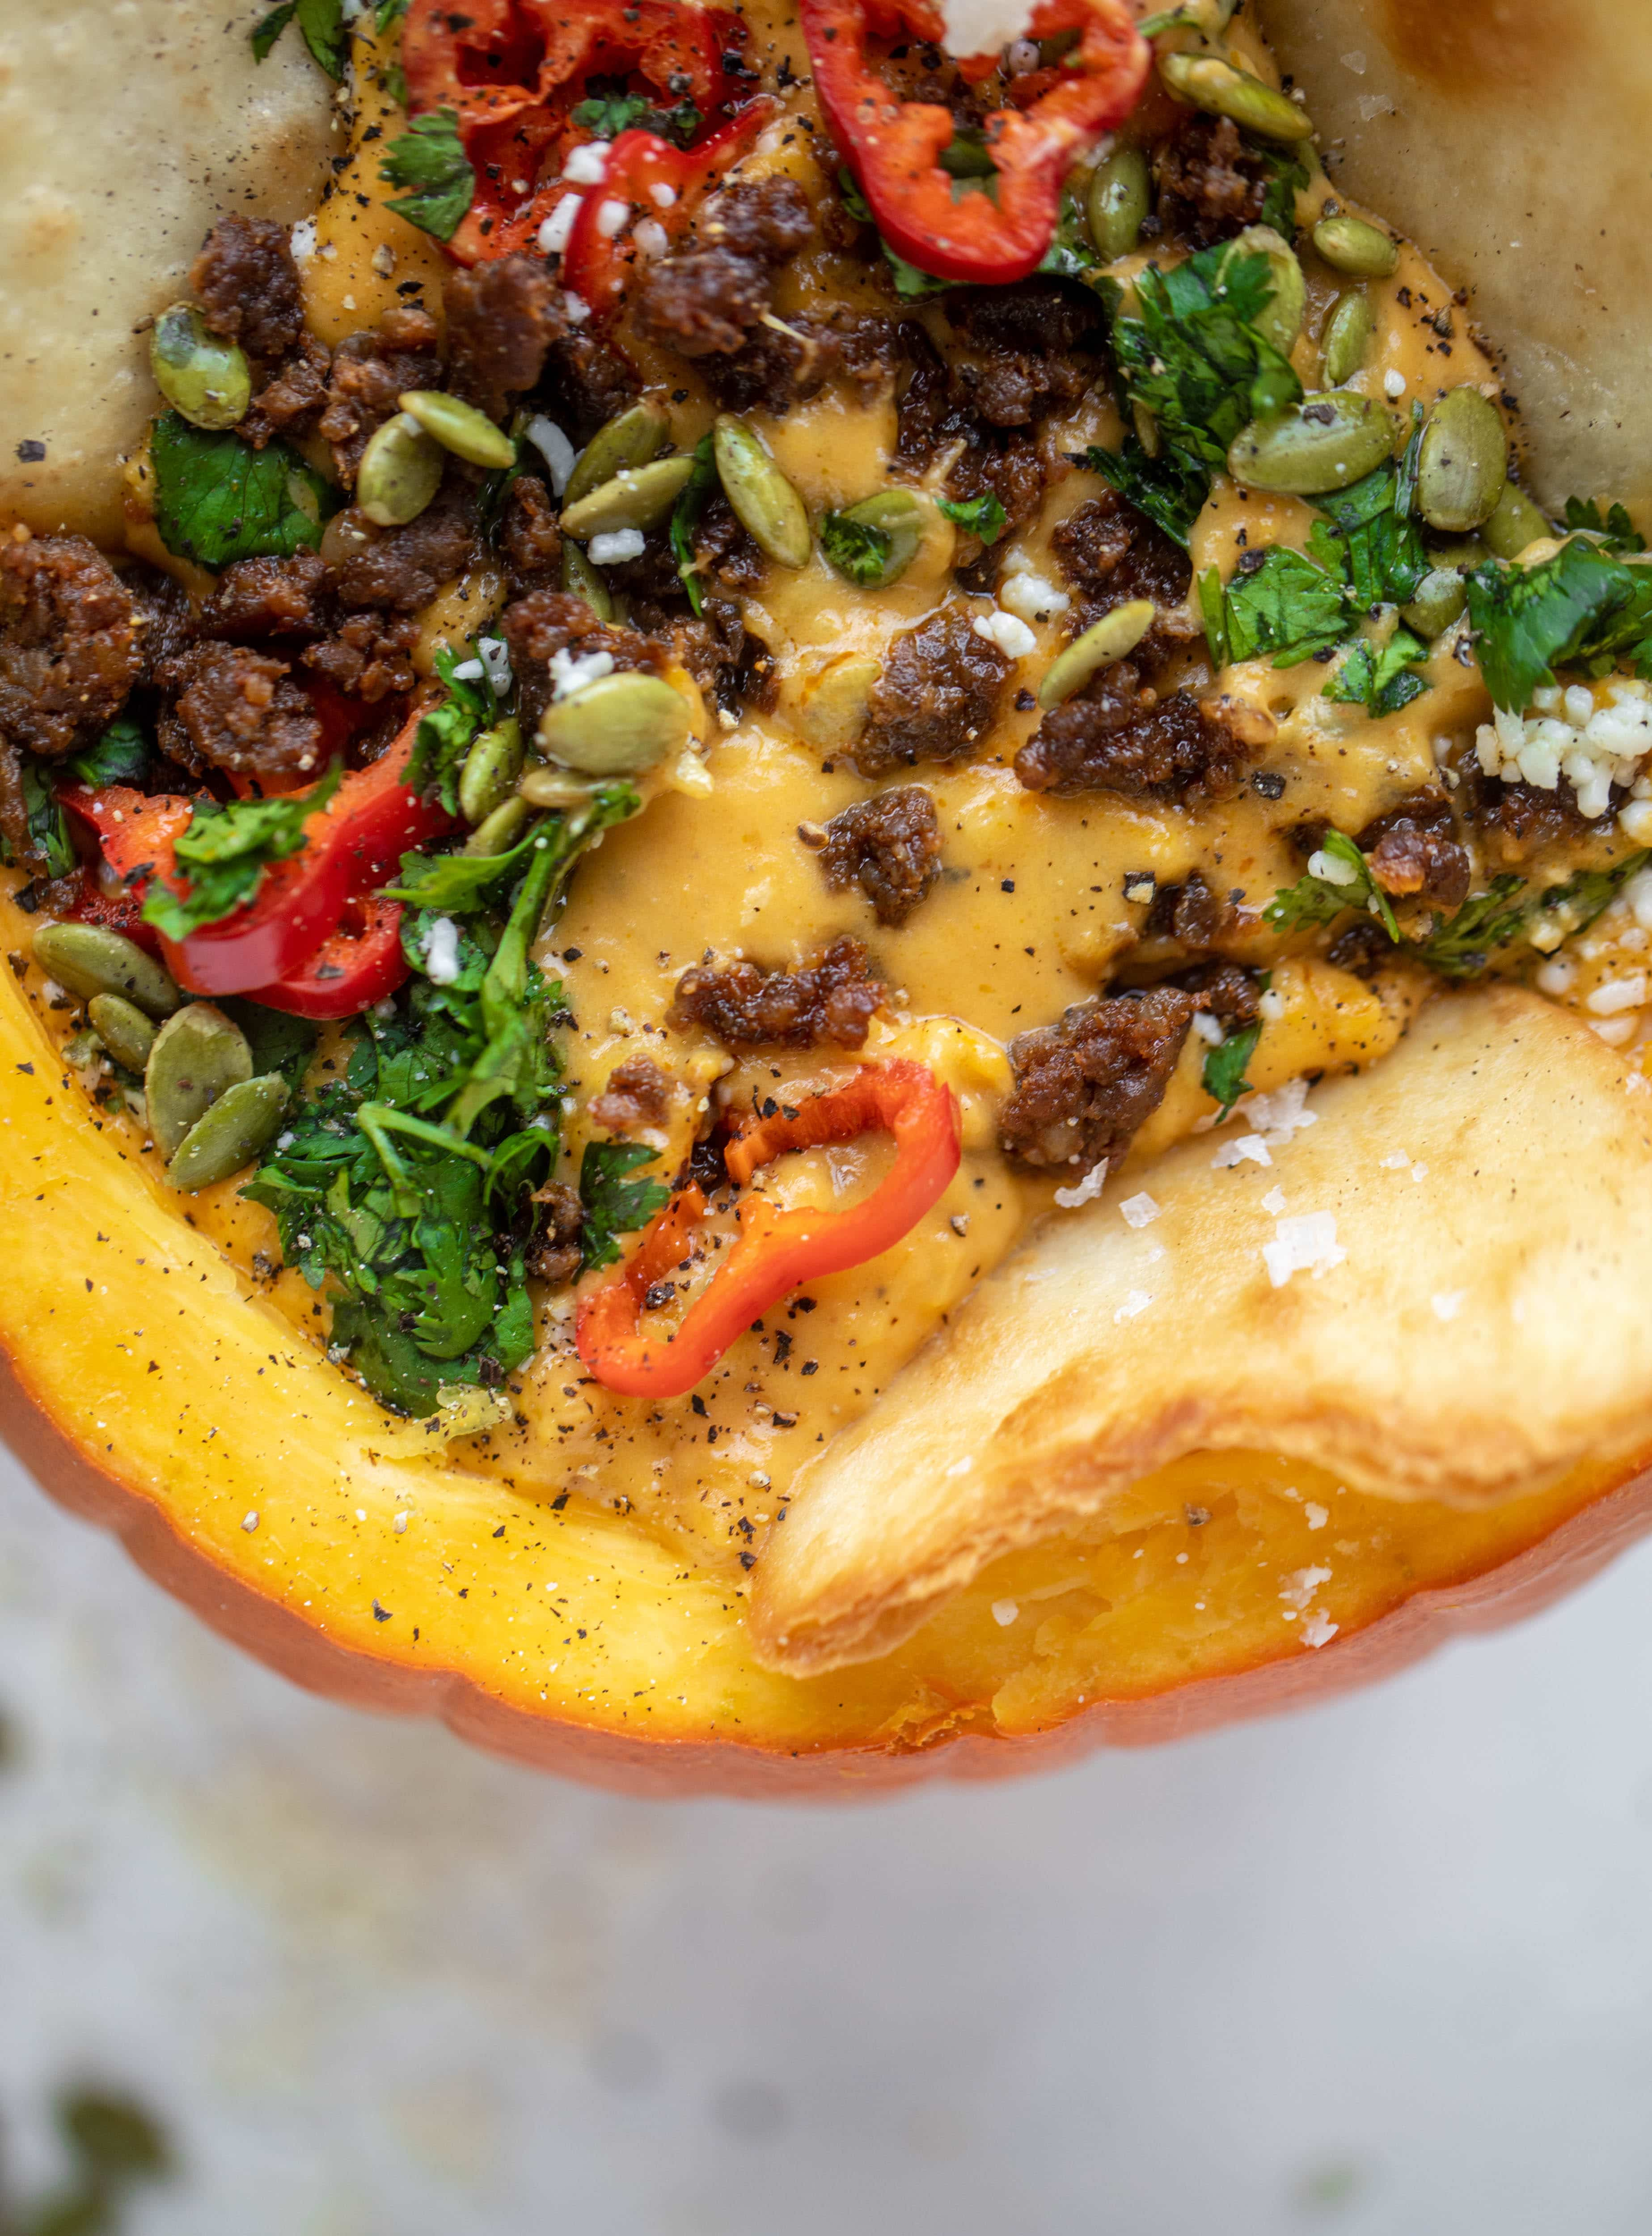 This pumpkin queso fundido is the perfect indulgence for fall. Warm pumpkin queso topped with chroizo, pepitas and jalapeños. It's delish!